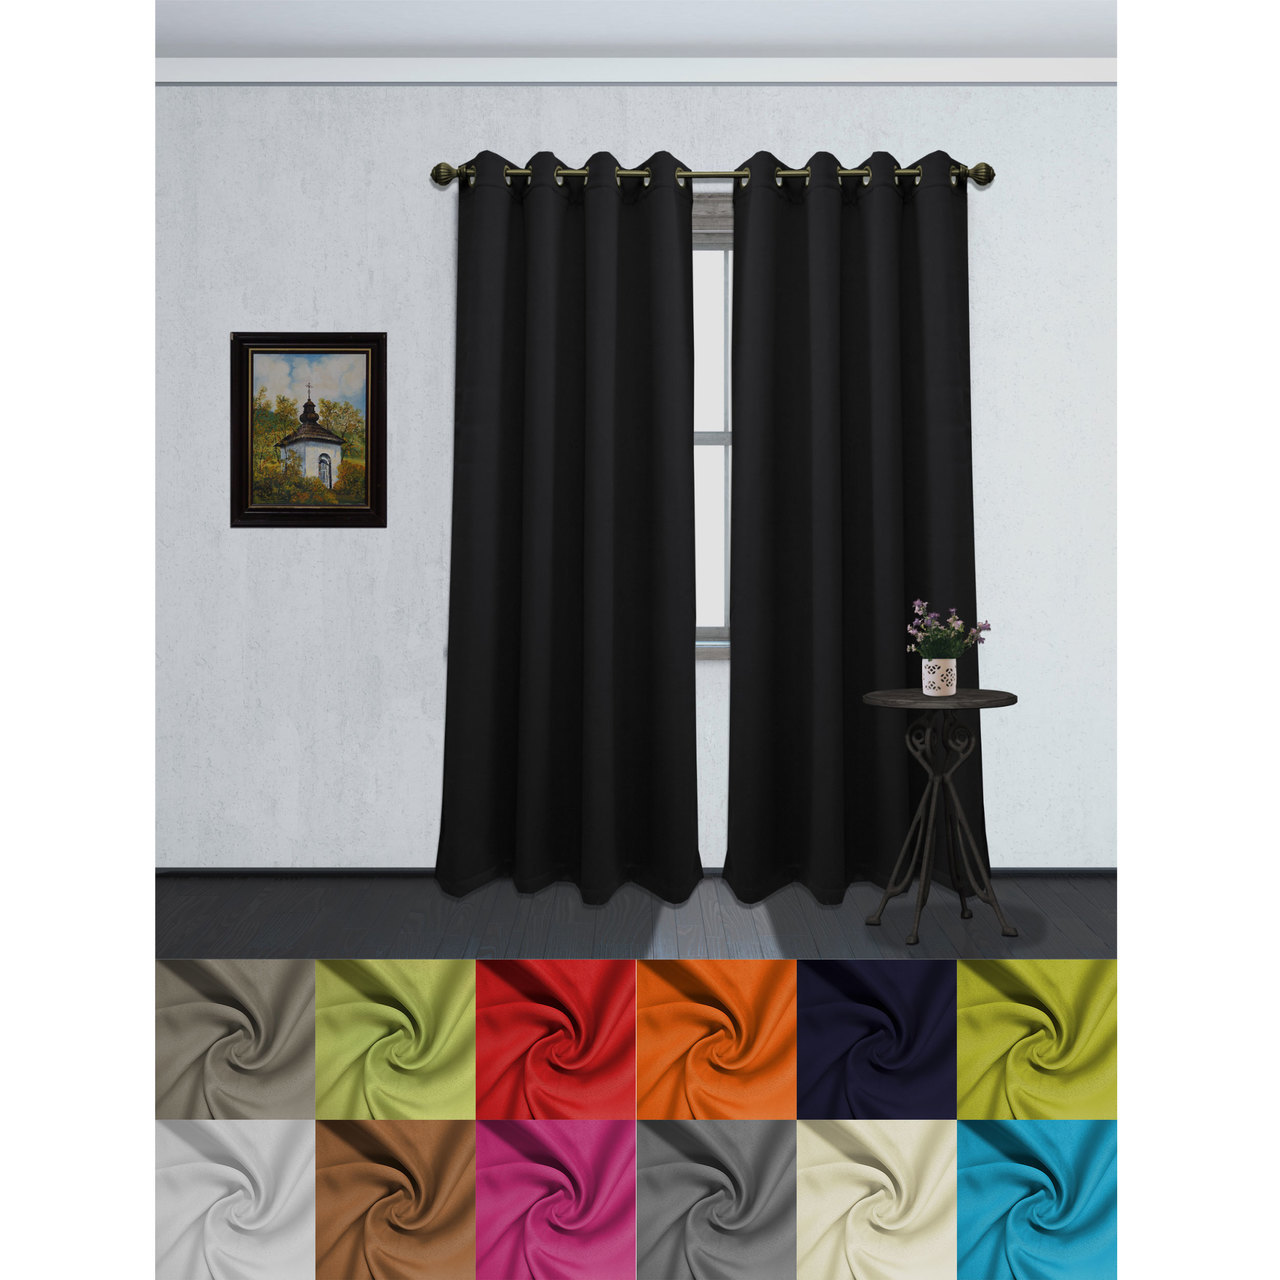 Thermal Backed Curtains Sale | Thermal Window Coverings | Thermal Insulated Curtains